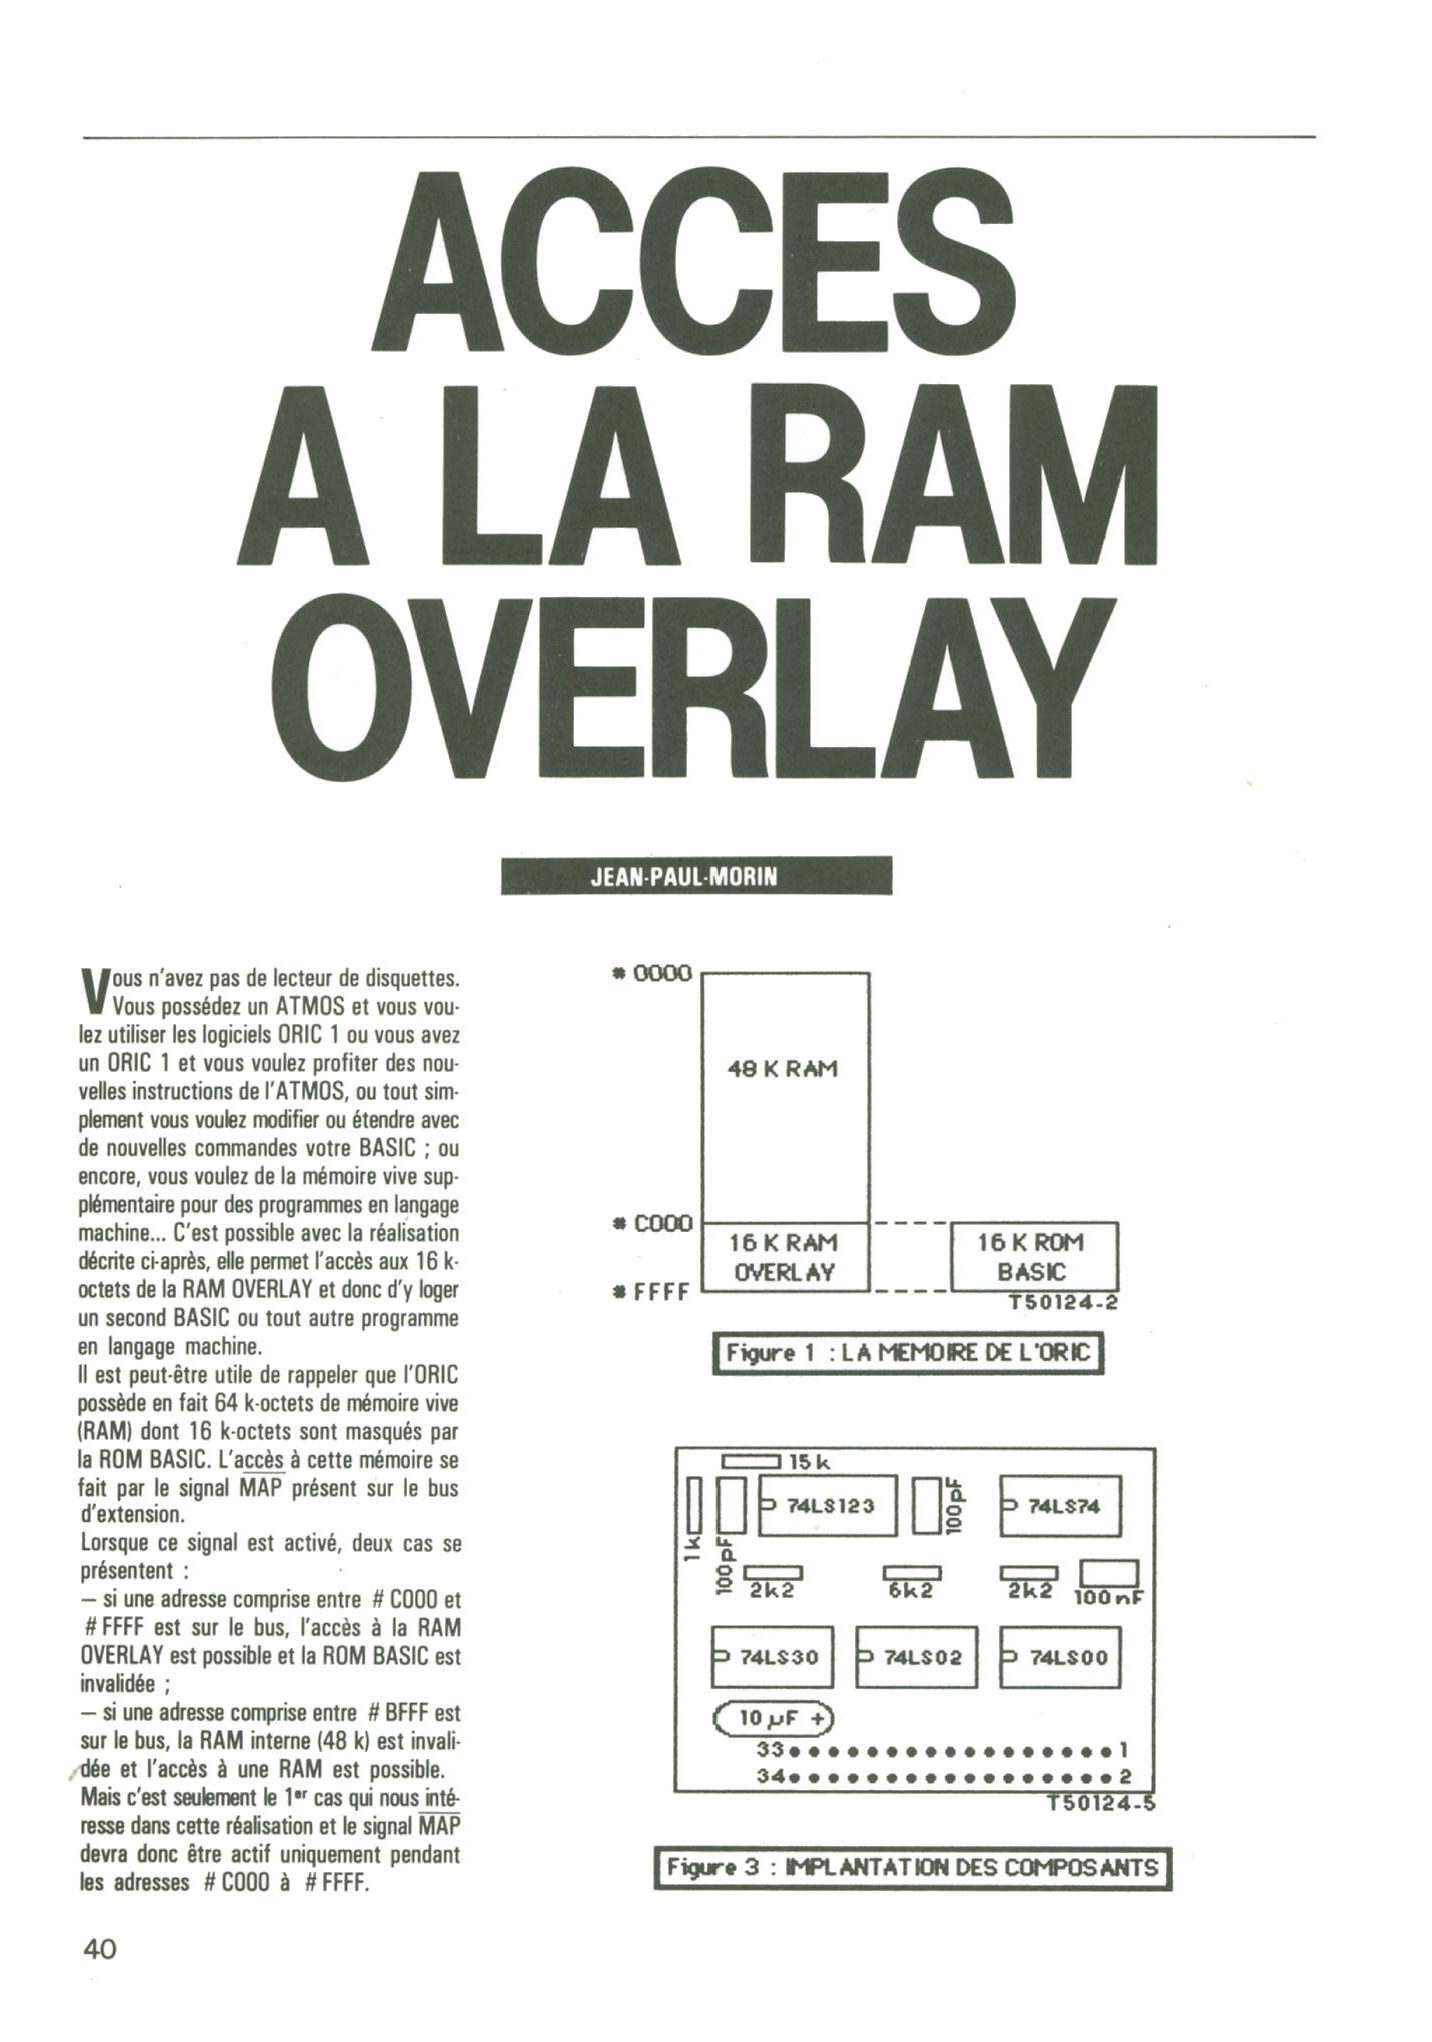 Theoric 05 - Février 1985 - page 40 ram overlay.jpg